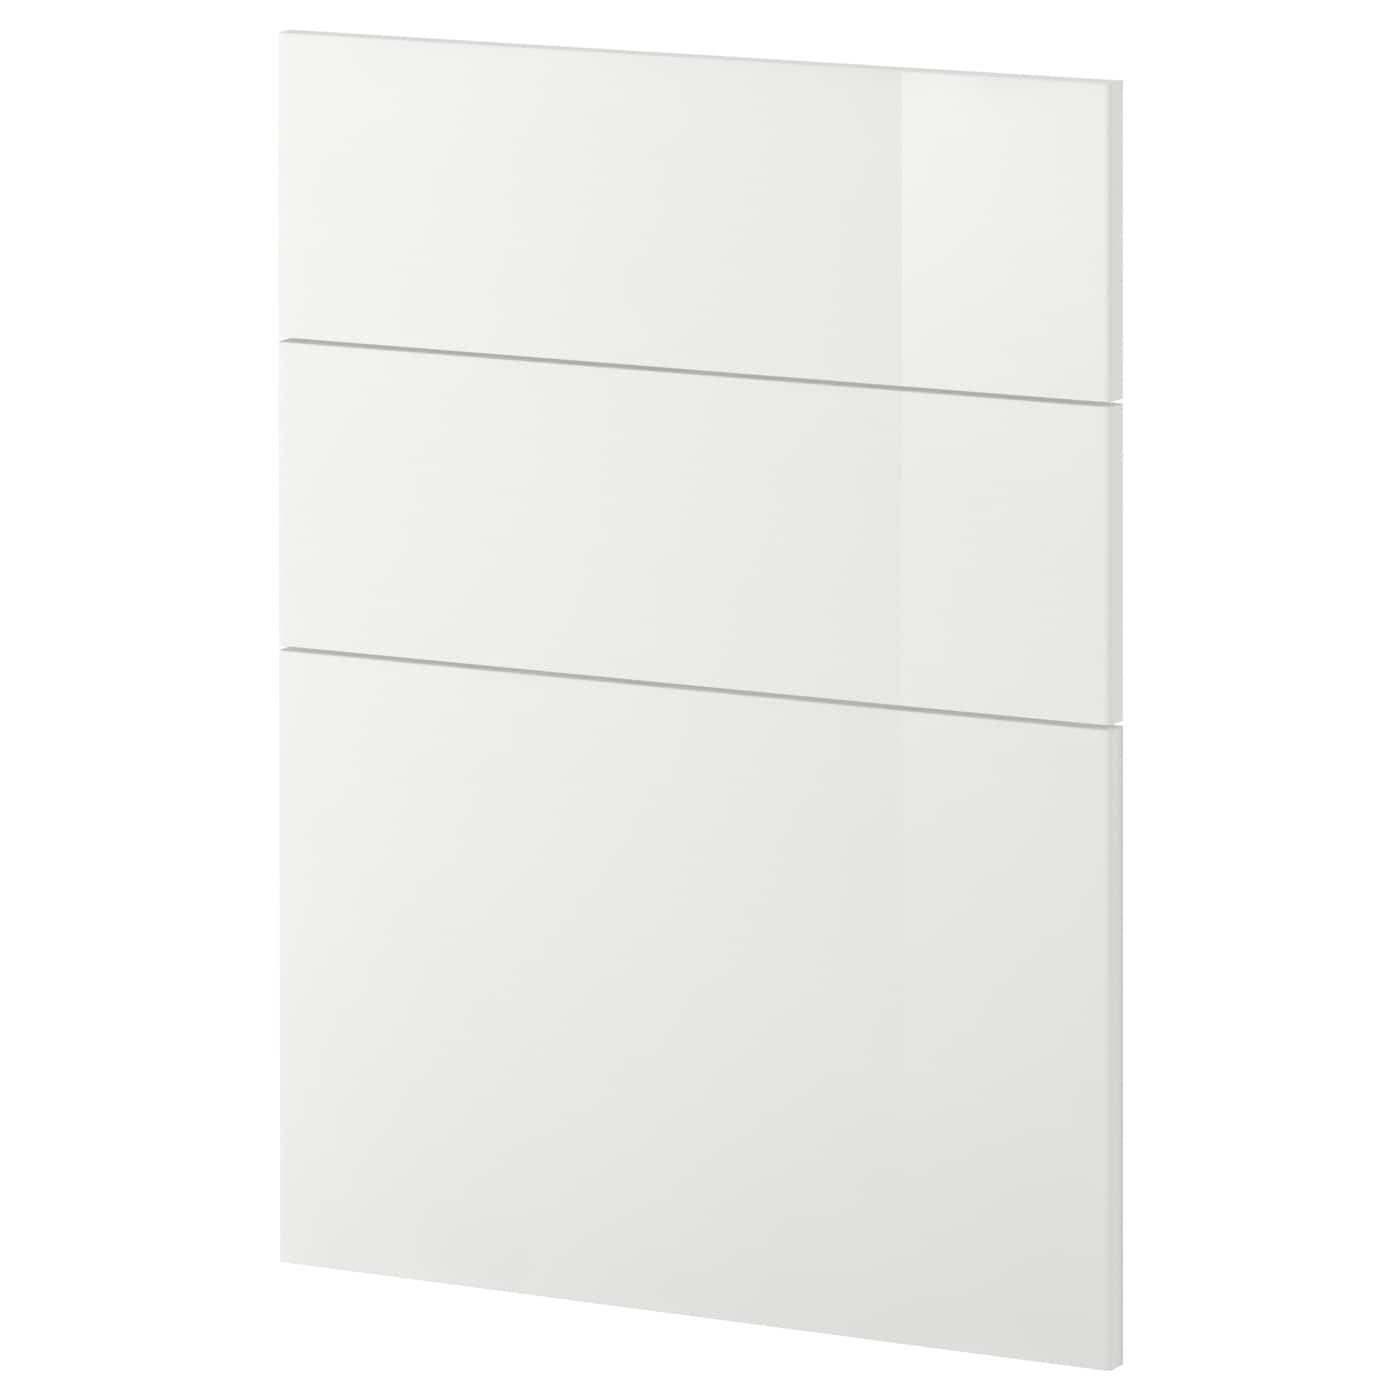 IKEA METOD 3 fronts for dishwasher